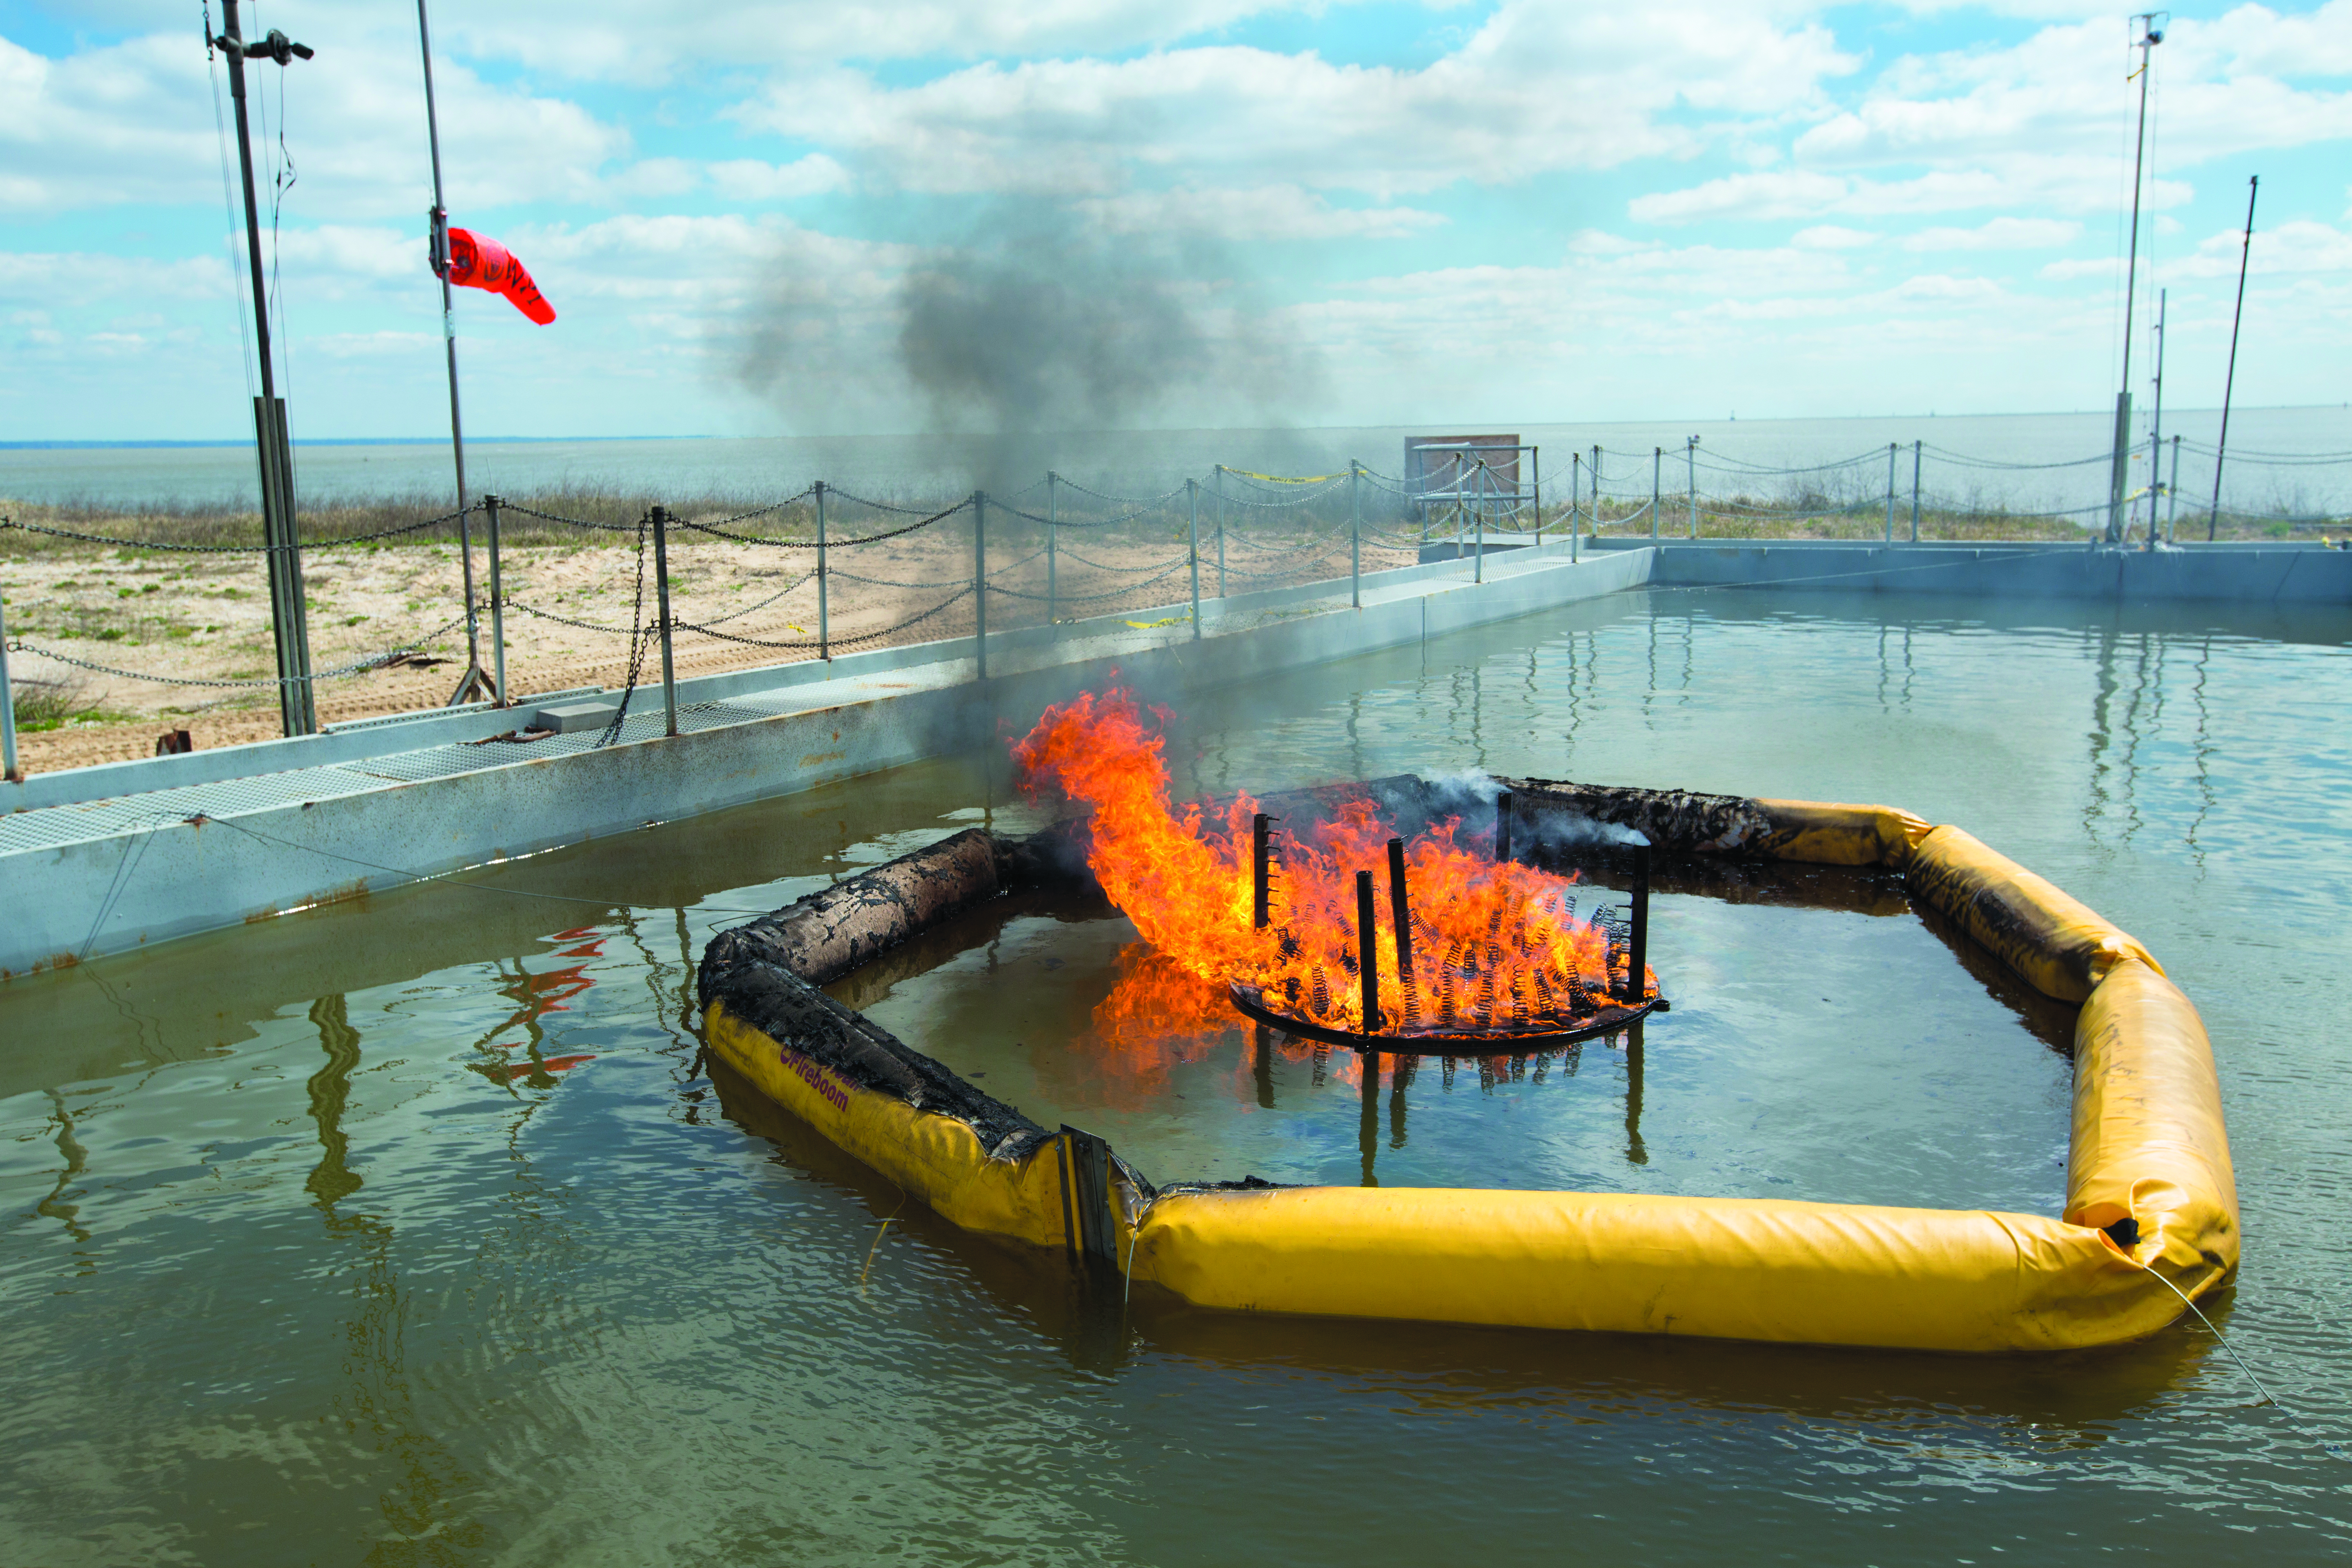 The Flame Refluxer surrounded by a yellow oil boom burns inside the burn pan on Little Sand Island